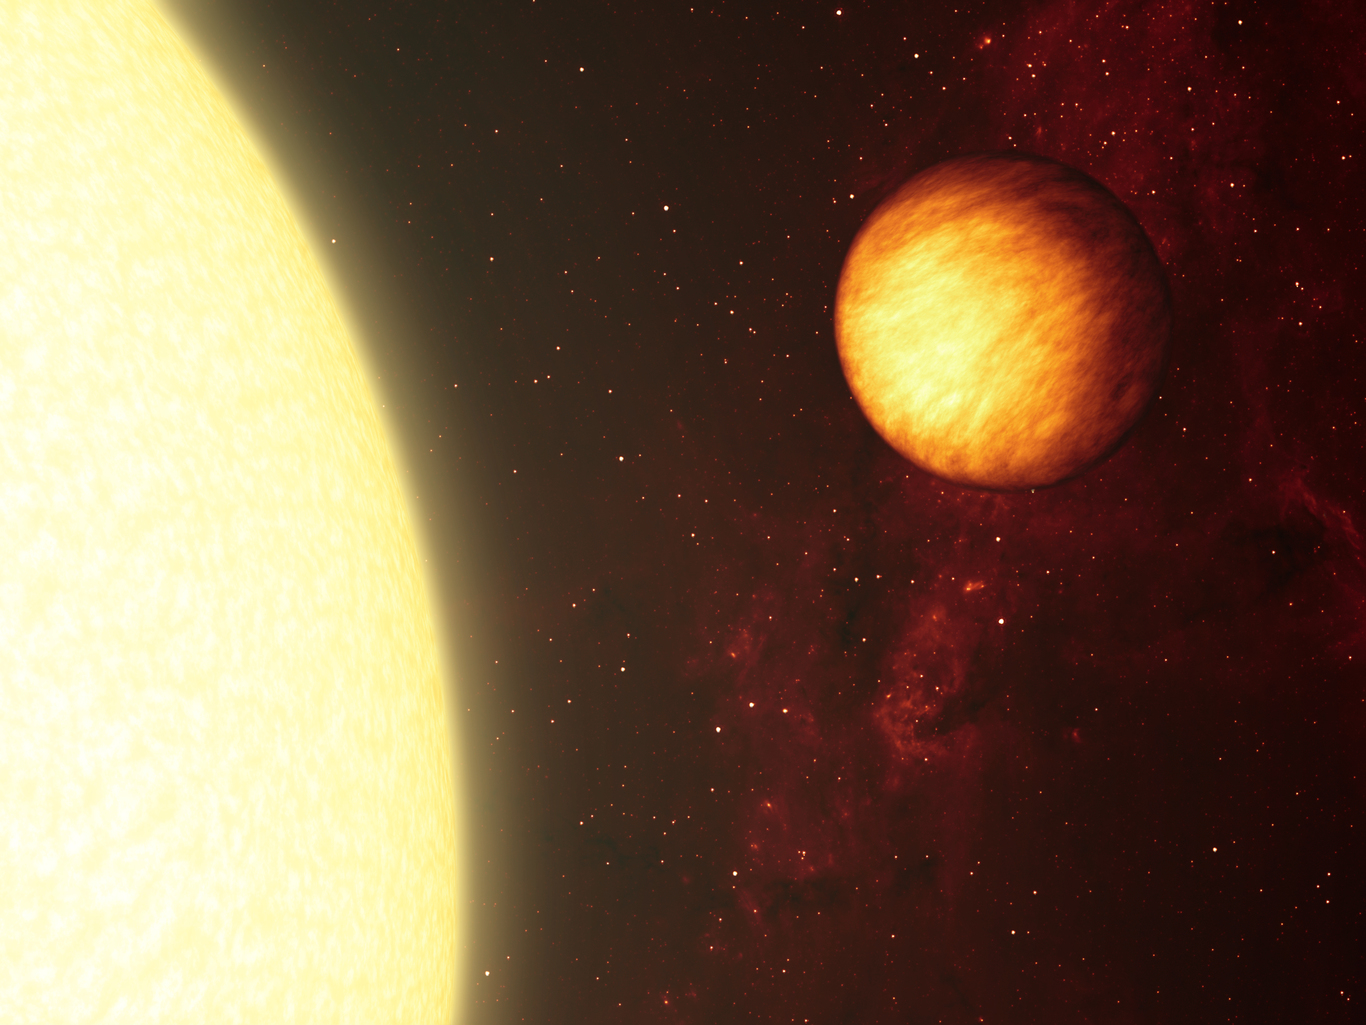 An artist's impression of a hot Jupiter, Upsilon Andromedae b, about to pass behind the disk of its host star. – Image Credit: NASA/JPL-Caltech/R. Hurt (SSC)